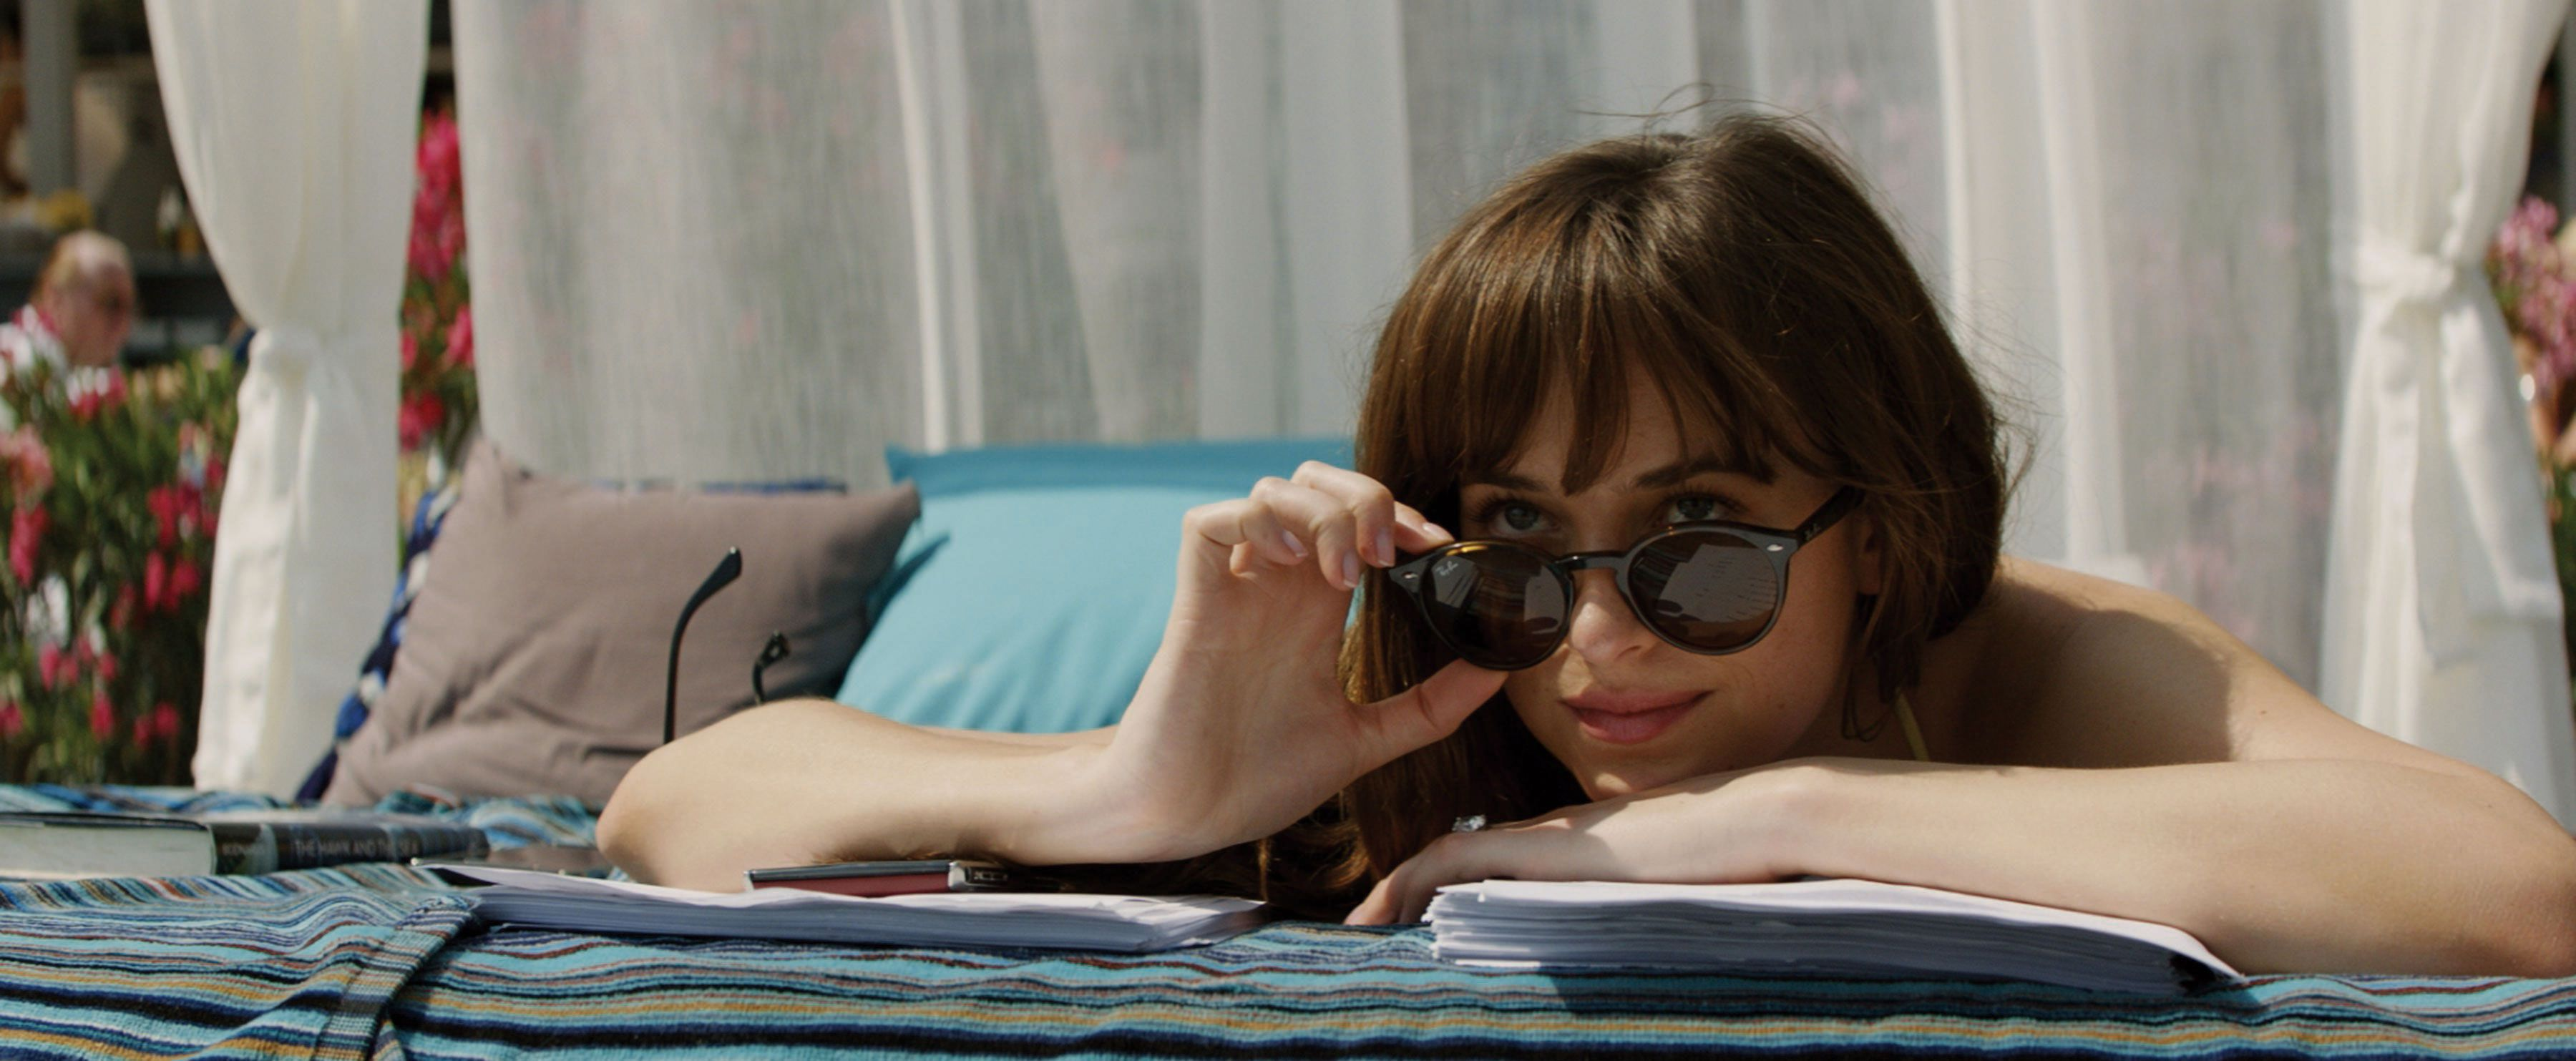 Fifty Shades Freed Is a Wonderful Mess. Accept That and Enjoy the Ride picture